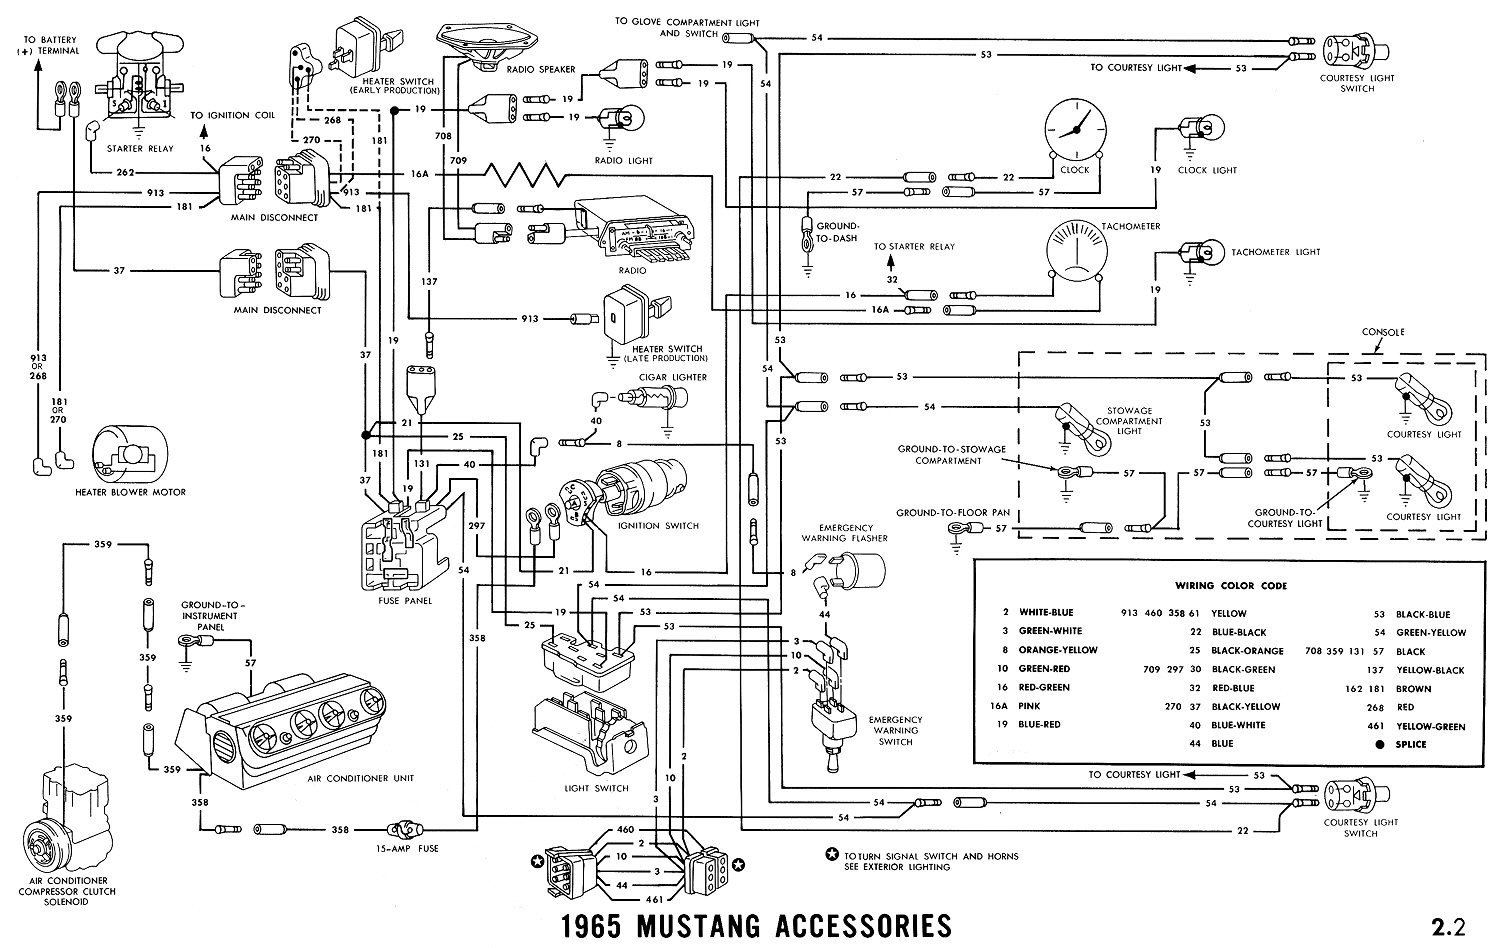 1965 Mustang Accessories Pictorial or Schematic. Air conditioner ...